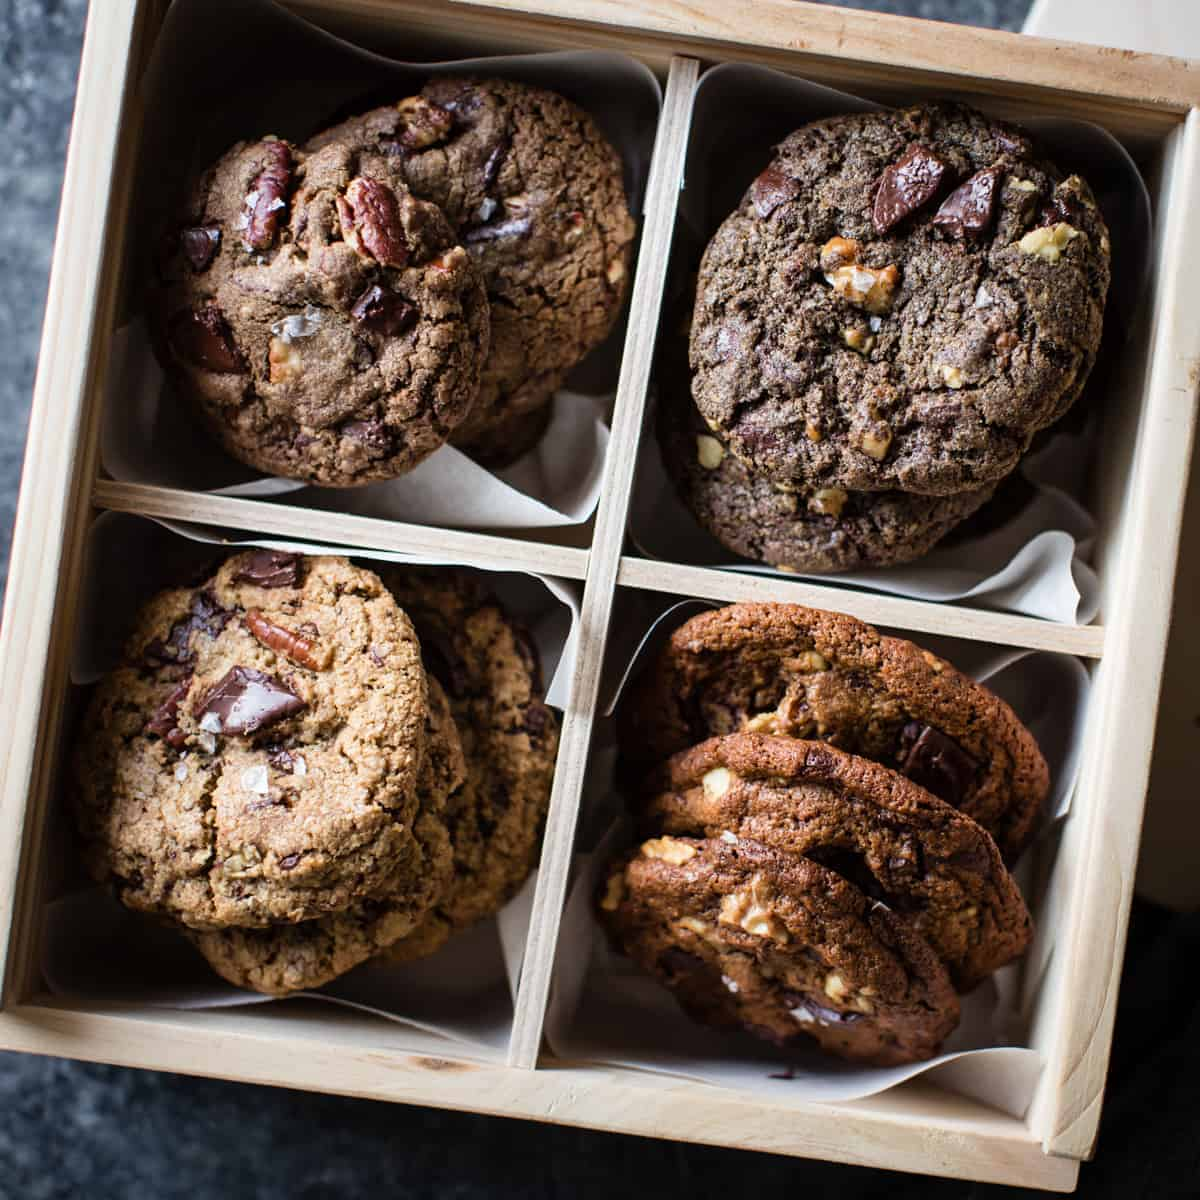 Gluten-Free Chocolate Chip Cookies Four Ways: Oat, Teff, Buckwheat, Mesquite